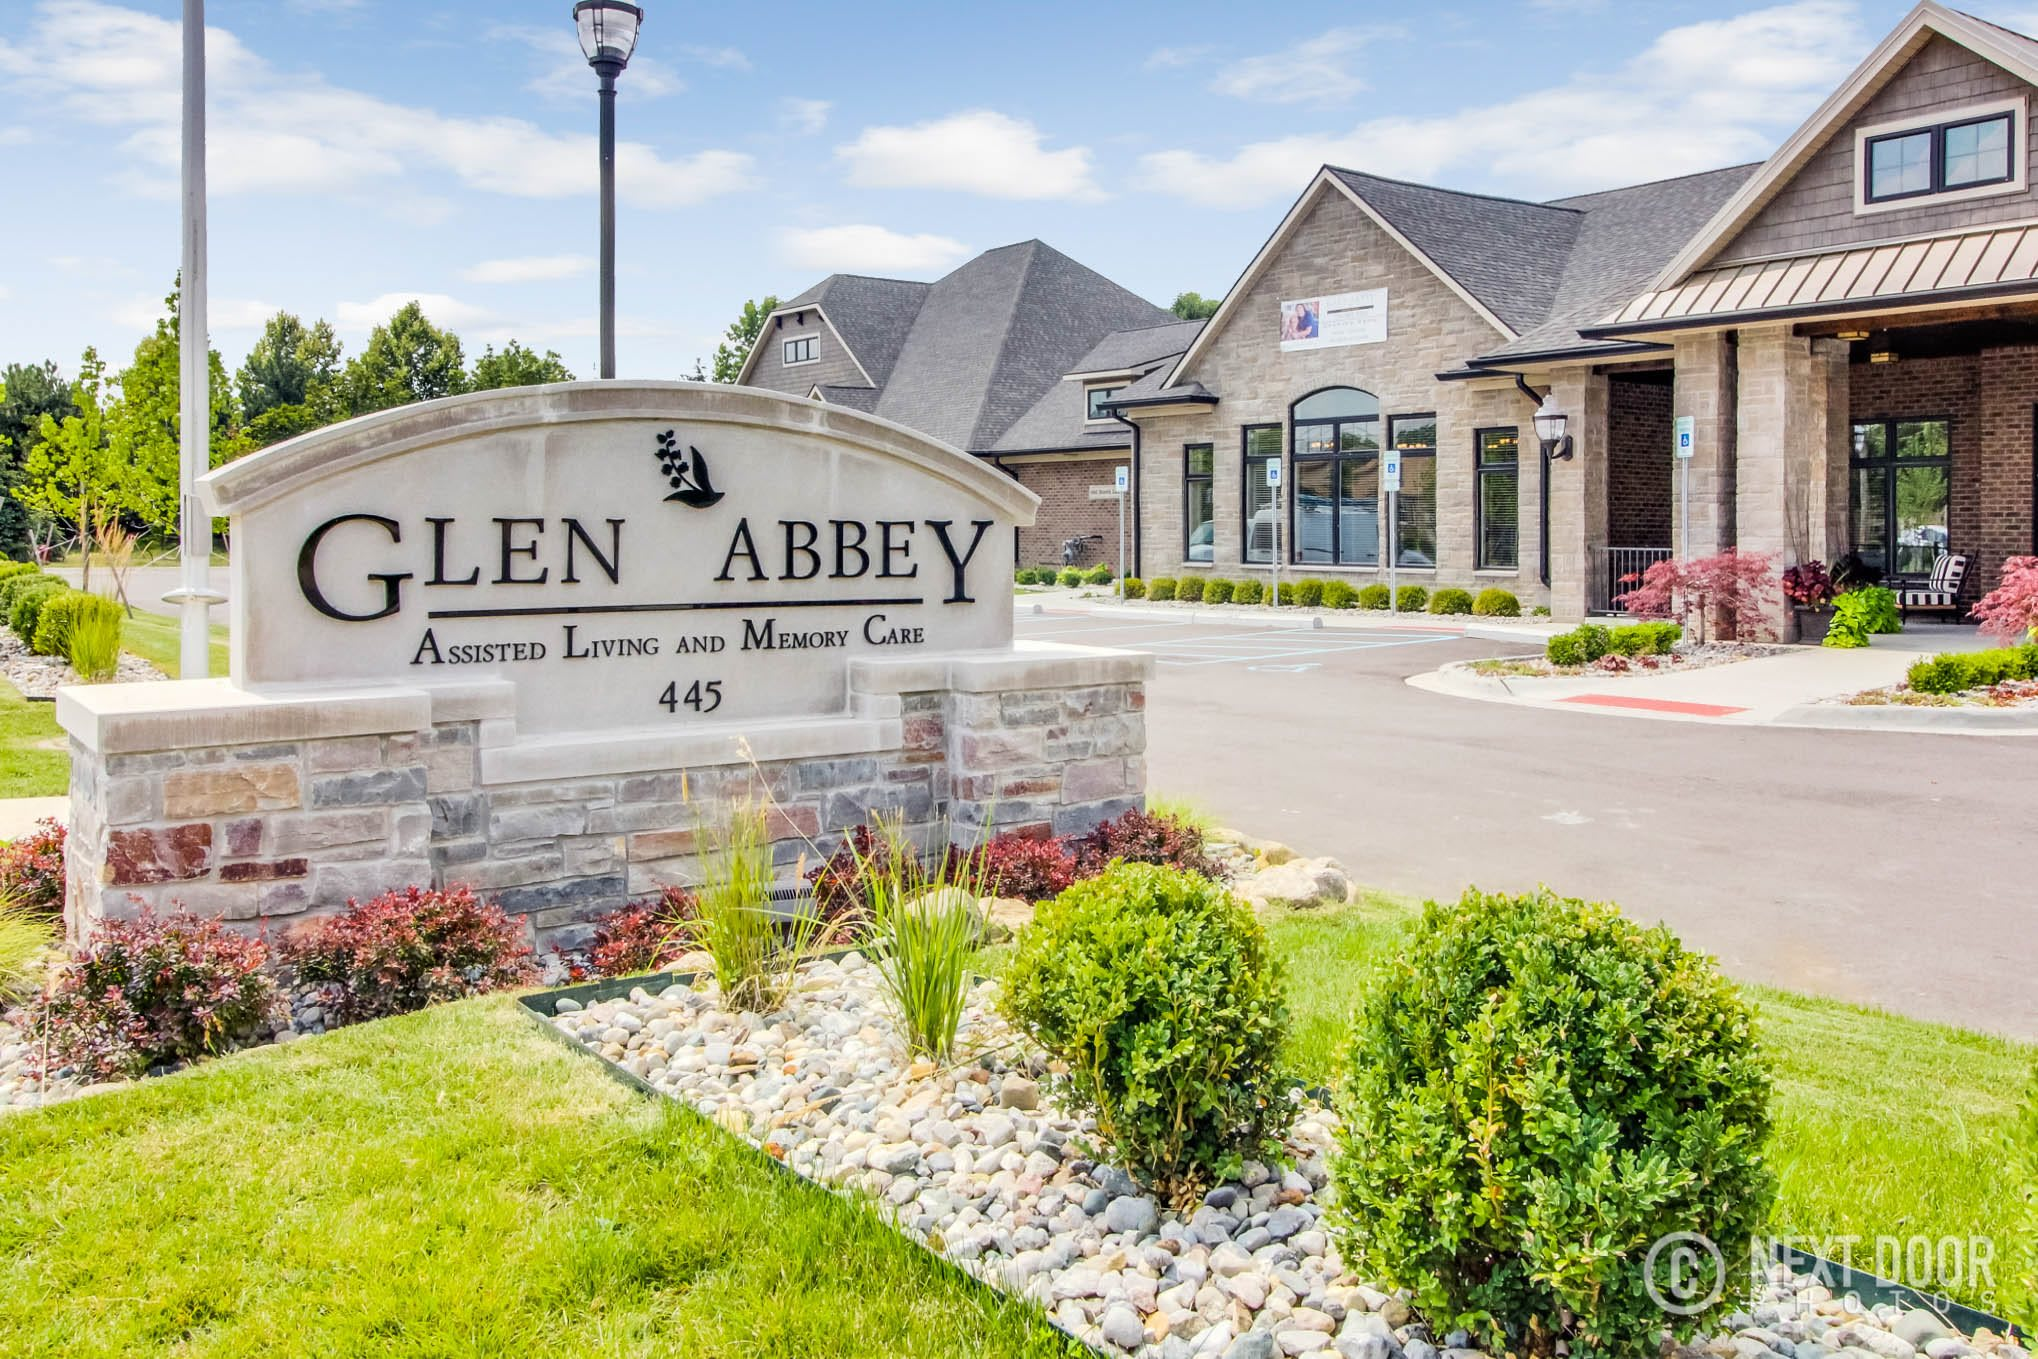 Photo 1 of Glen Abbey Assisted Living & Memory Care